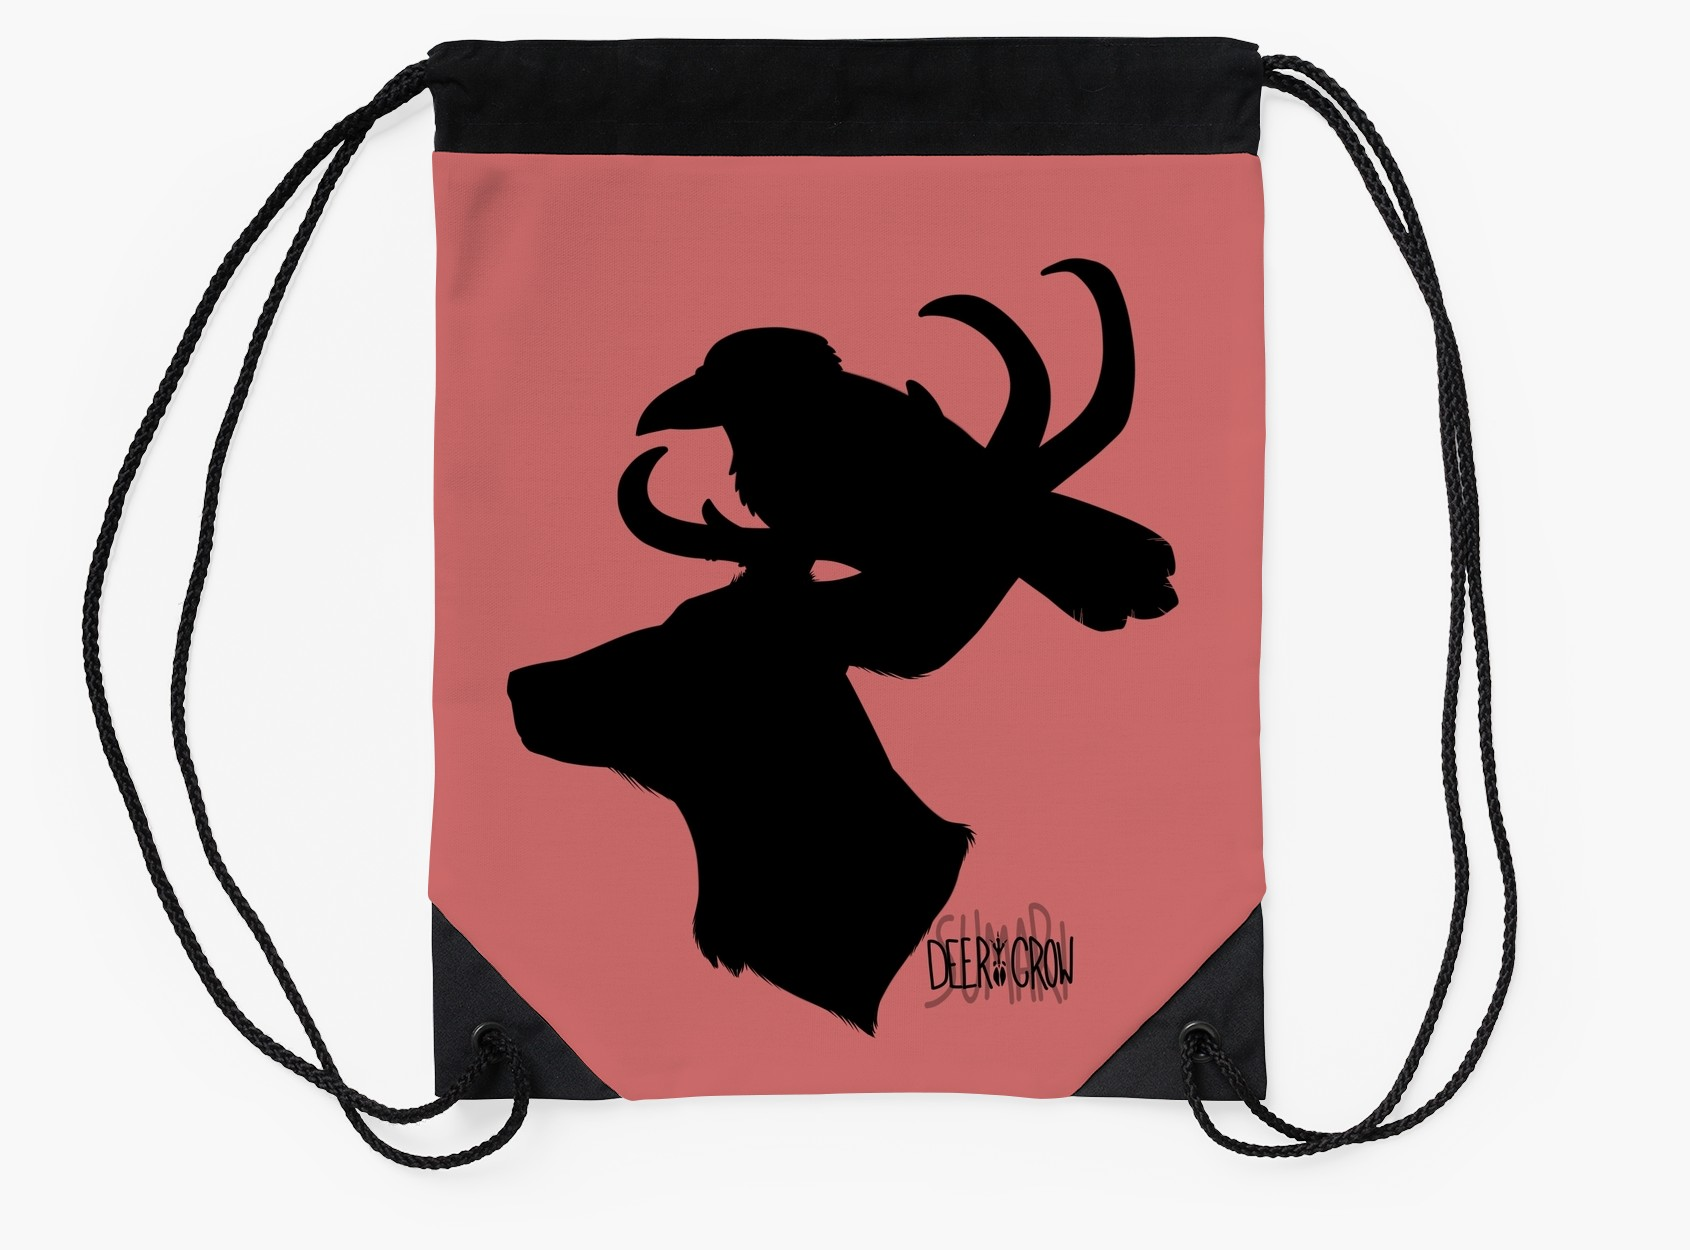 1690x1250 Deercrow Silhouette With Words Drawstring Bags By Deercrow